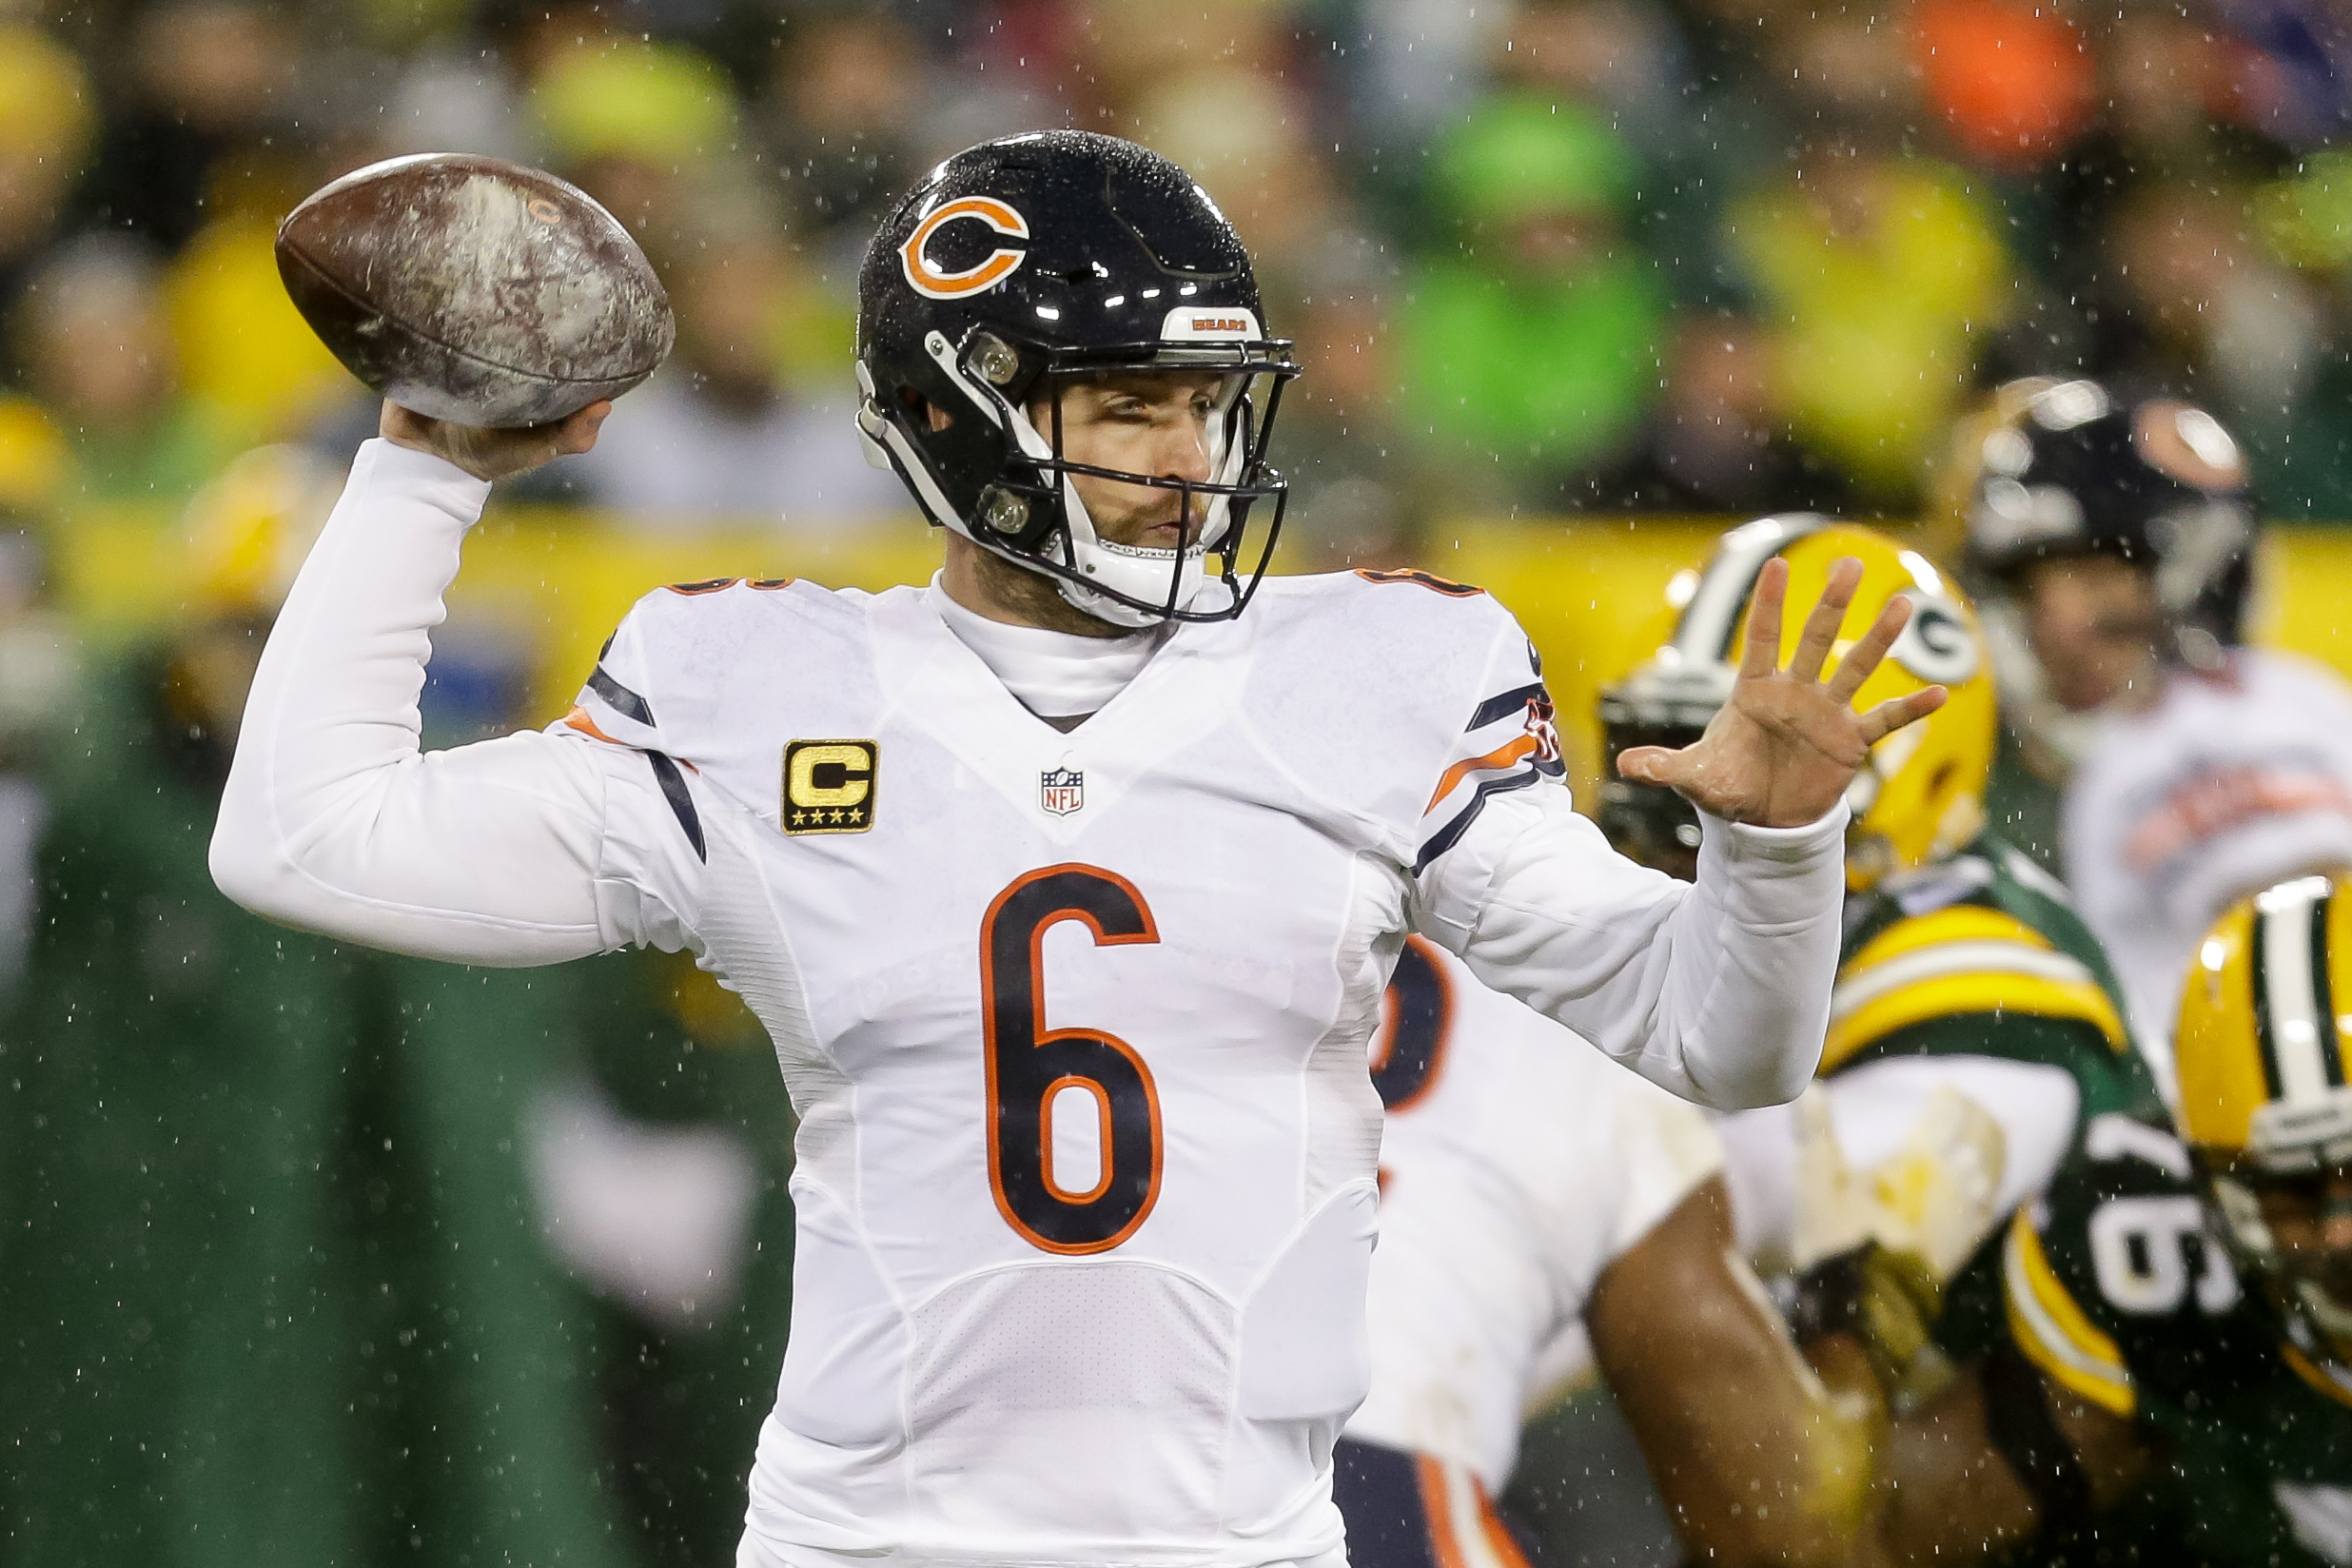 Quarterback Jay Cutler #6 of the Chicago Bears looks to pass in the first quarter against the Green Bay Packers at Lambeau Field on November 26, 2015 in Green Bay, Wisconsin. (Photo by Mike McGinnis/Getty Images)